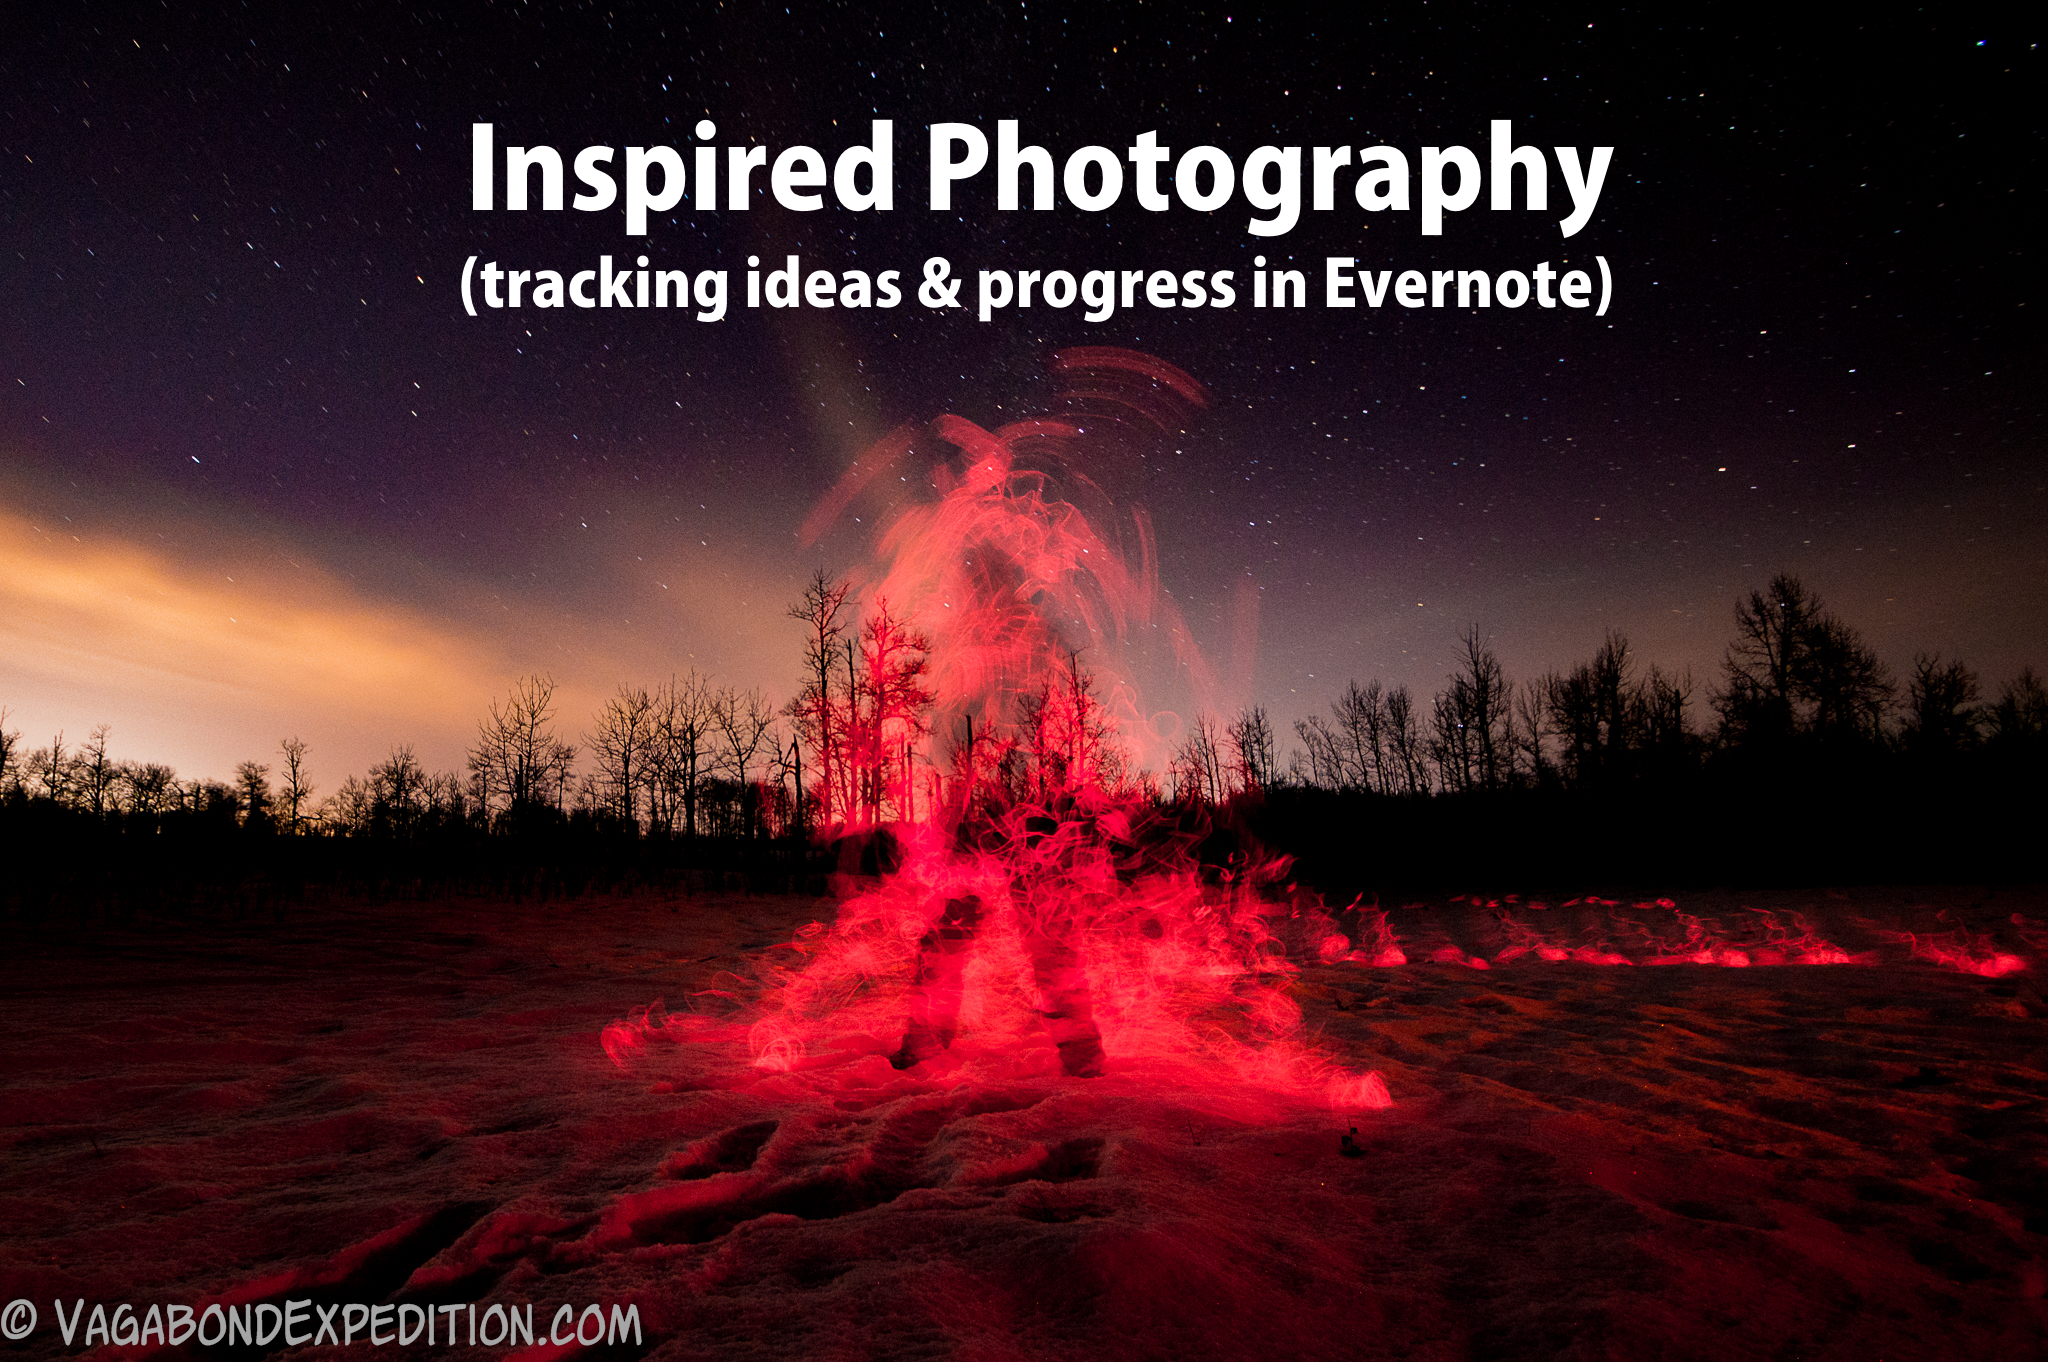 Inspired Photography with Evernote